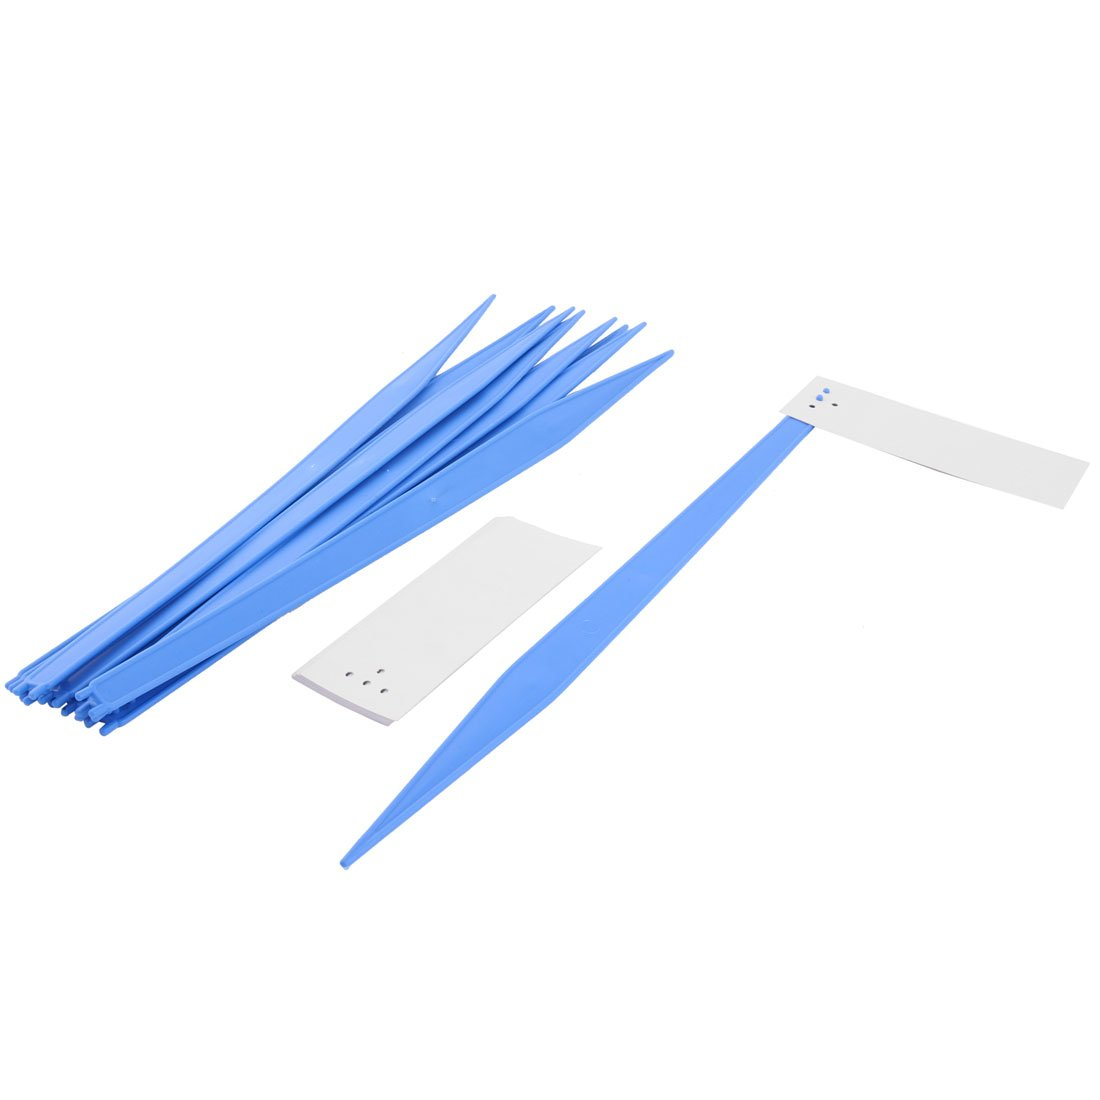 uxcell Plastic Home Garden Plant Seed Name Marking Label Marker 44cm Length 10 Pcs White Blue